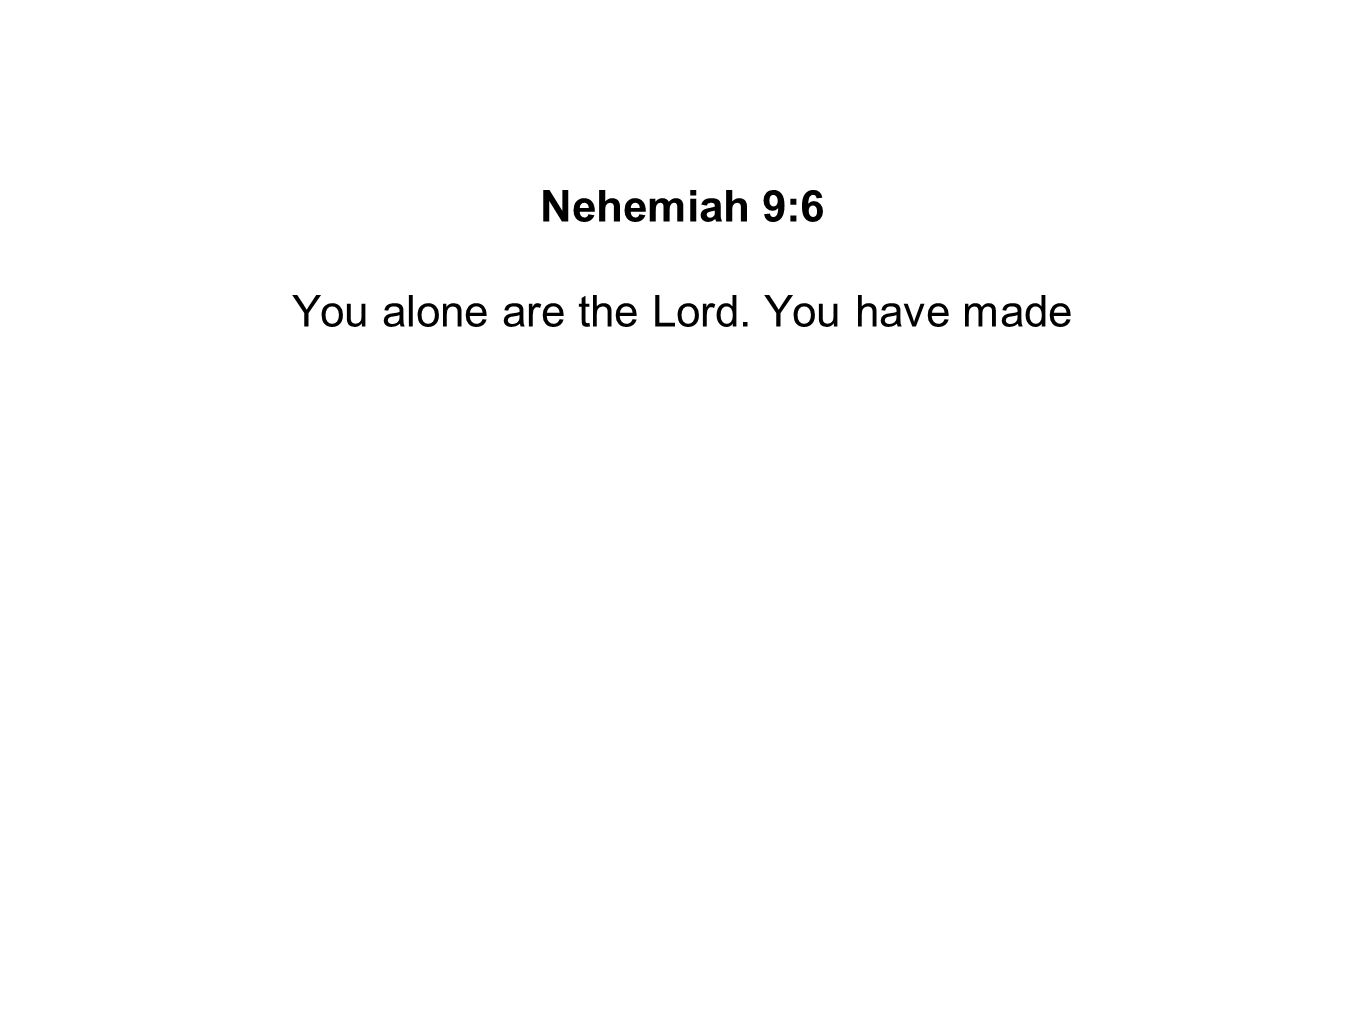 You alone are the Lord. You have made